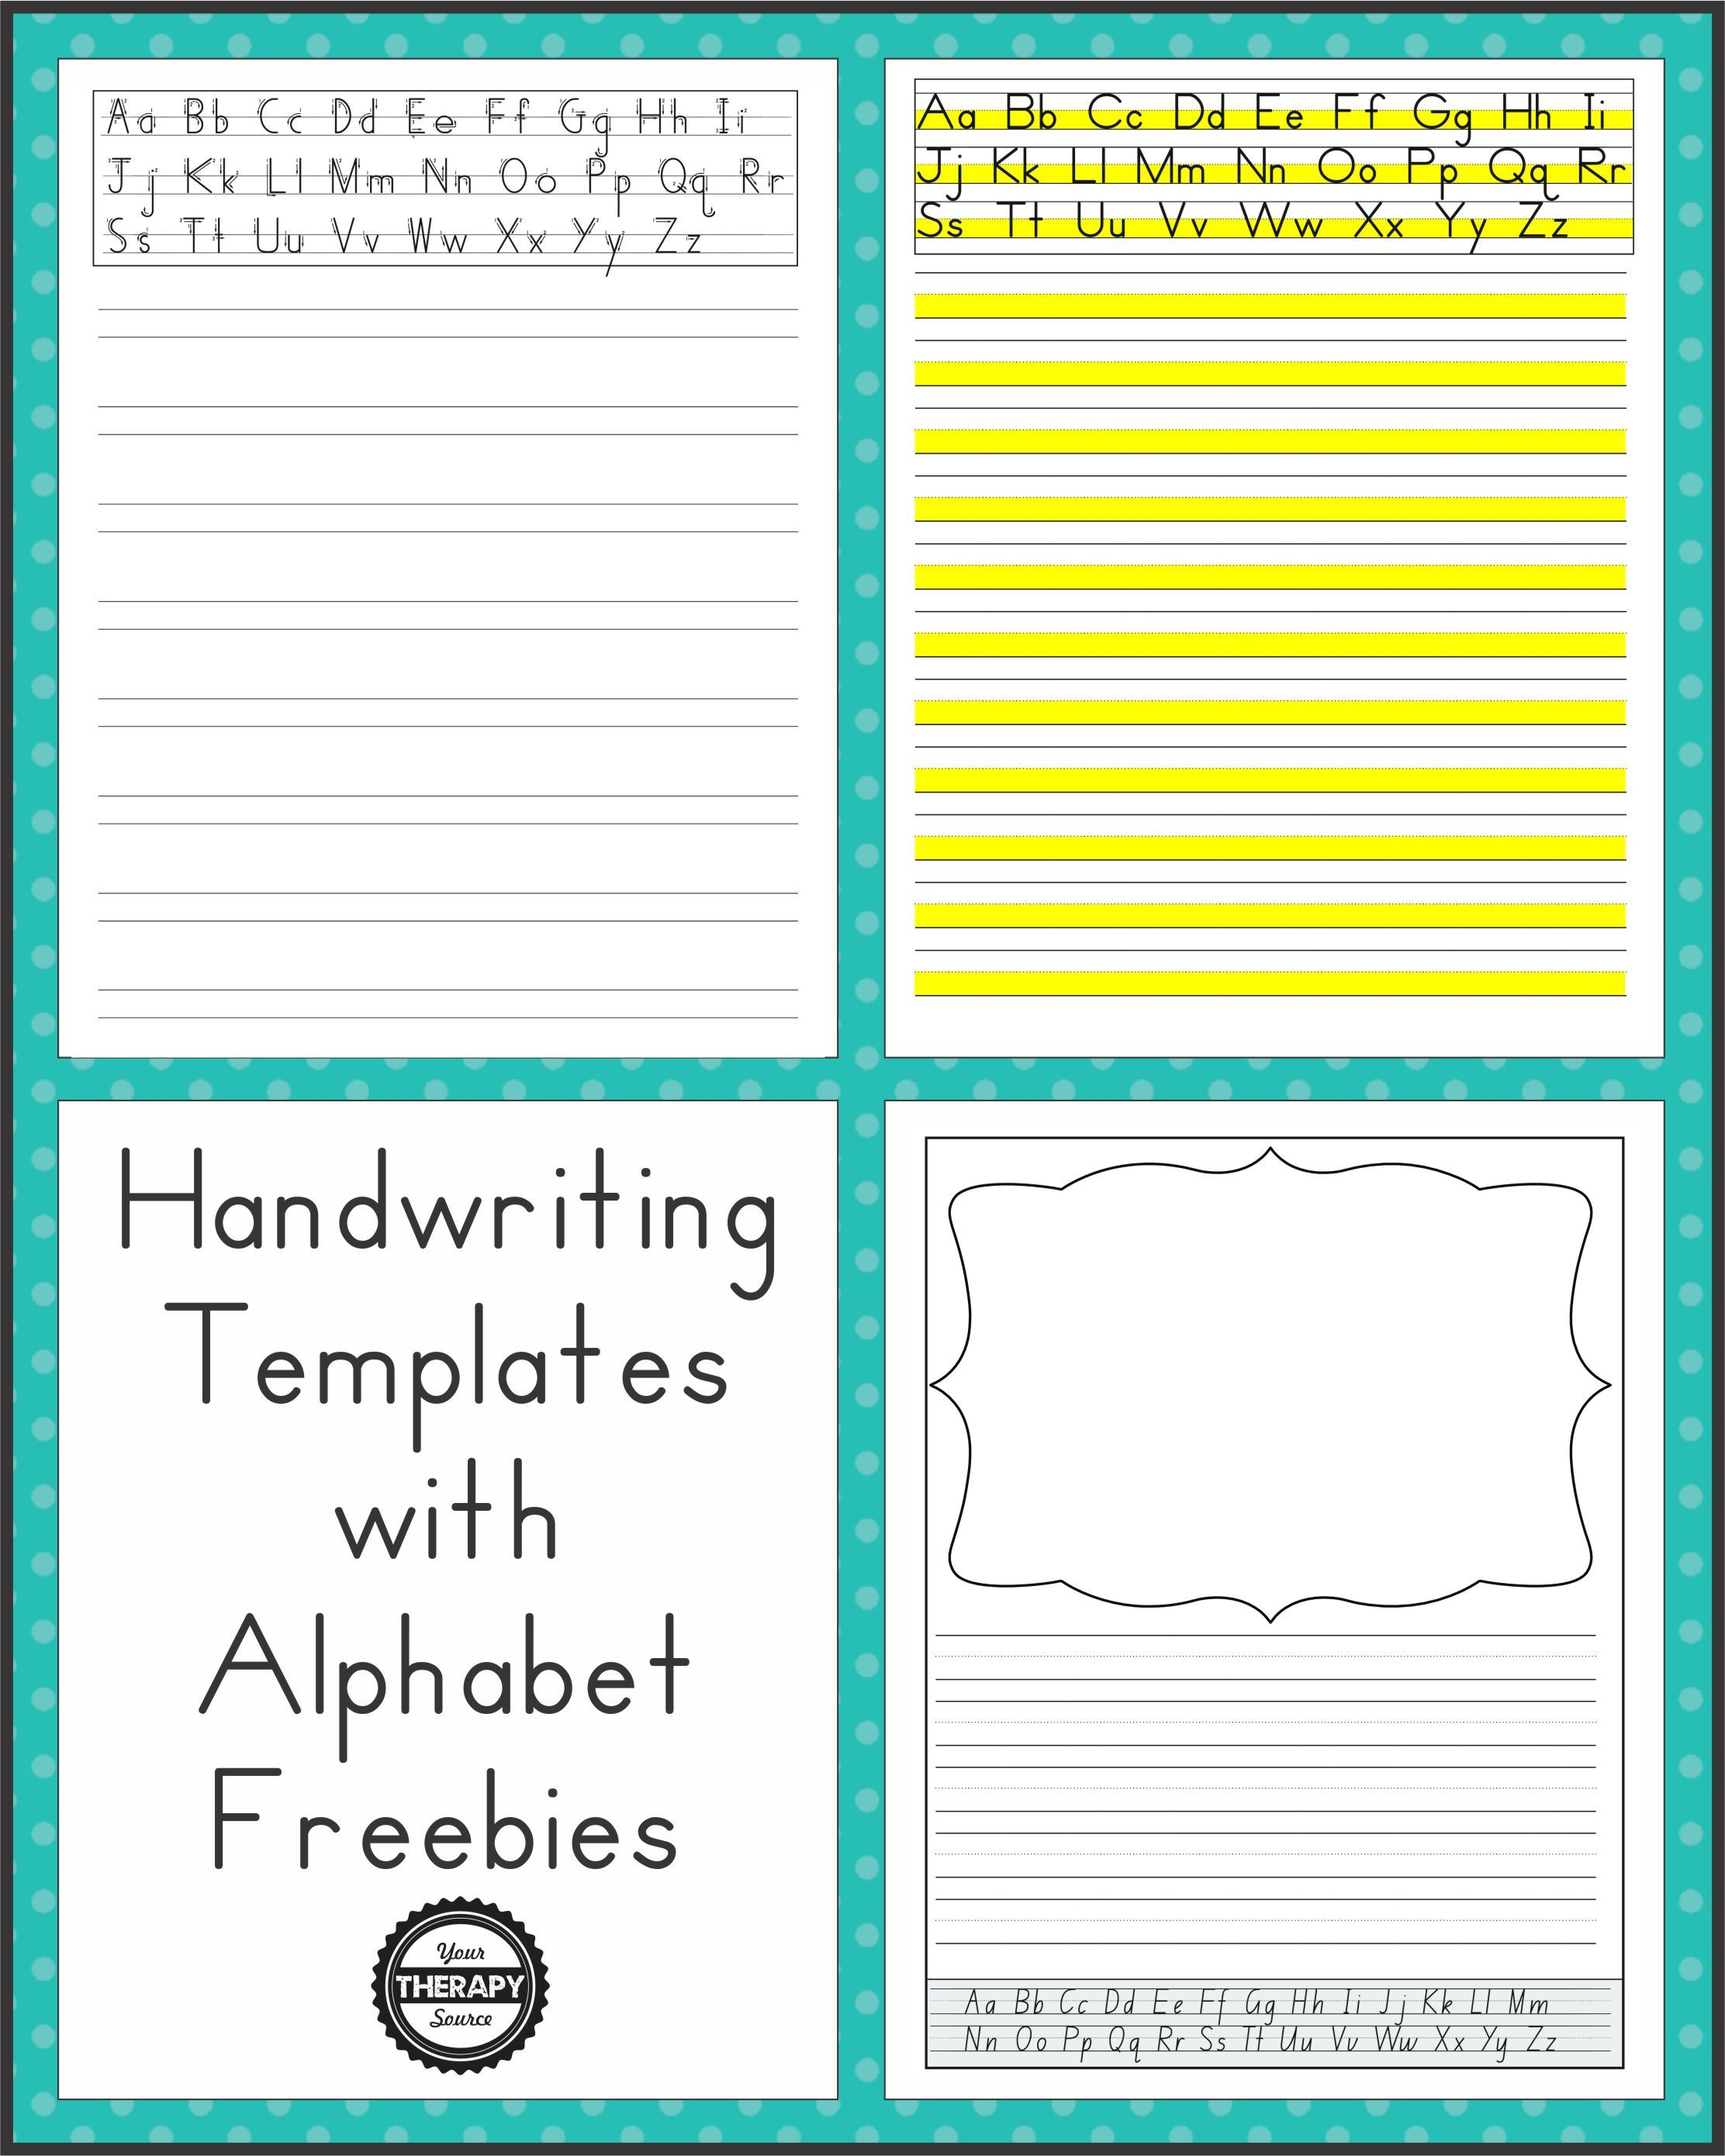 Handwriting Templates With Alphabet Guides Your Therapy Source Handwriting Template Handwriting Without Tears Handwriting Analysis Printable handwriting practice year 2